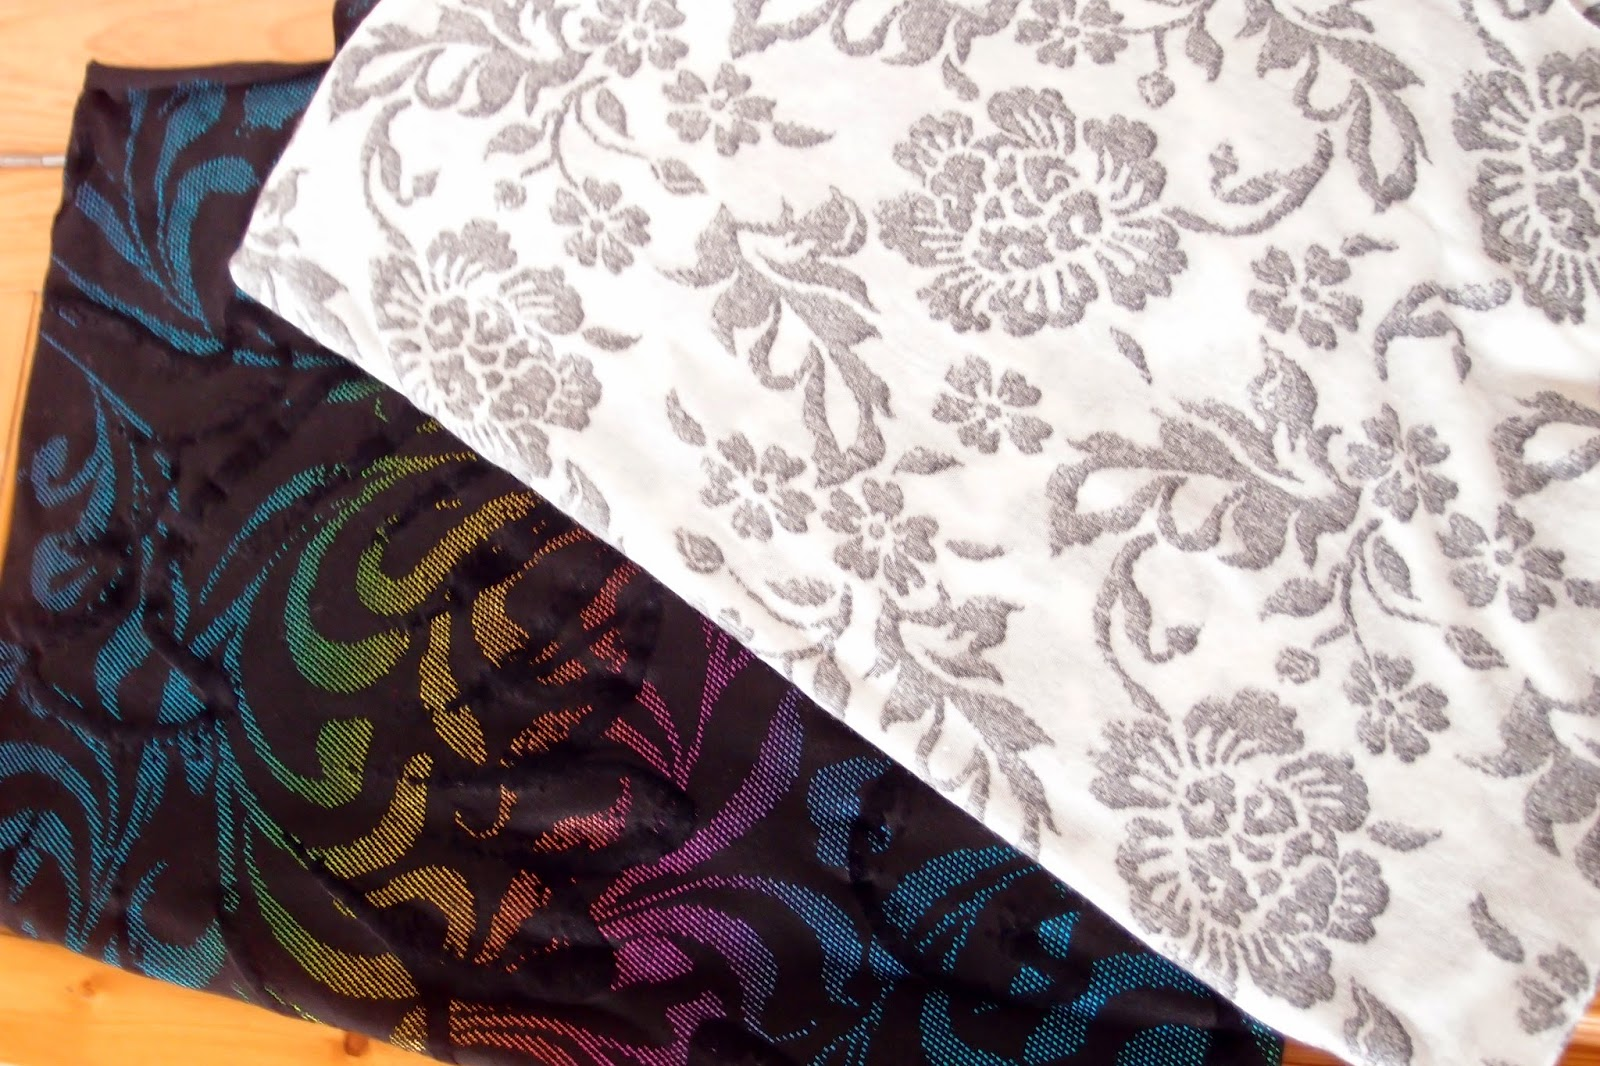 new fabrics for sewing lingerie here